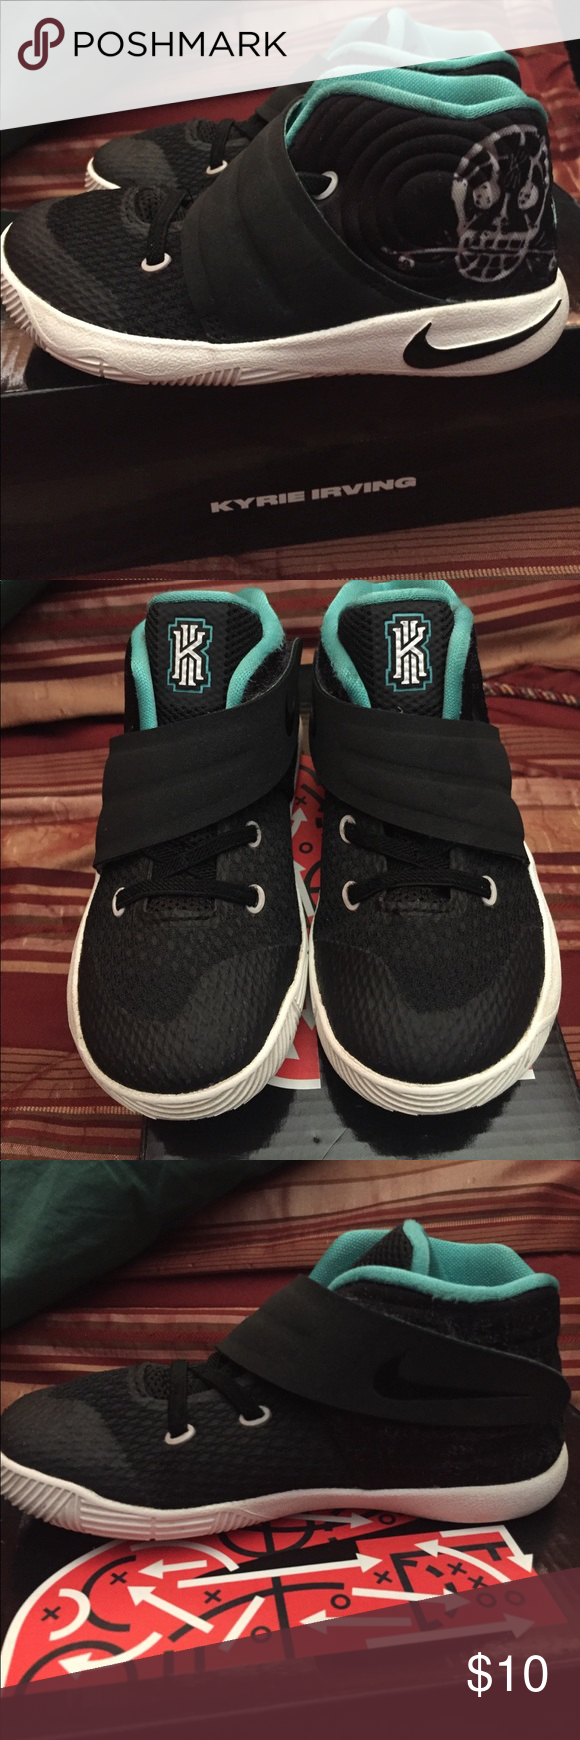 best sneakers 2d111 26d9f Toddler Boys Basketball Shoes Kyrie 2 Toddler Boys Basketball Shoes Kyrie 2  used. There black, white sole and a white skull 💀 on the side with Teal  lining ...